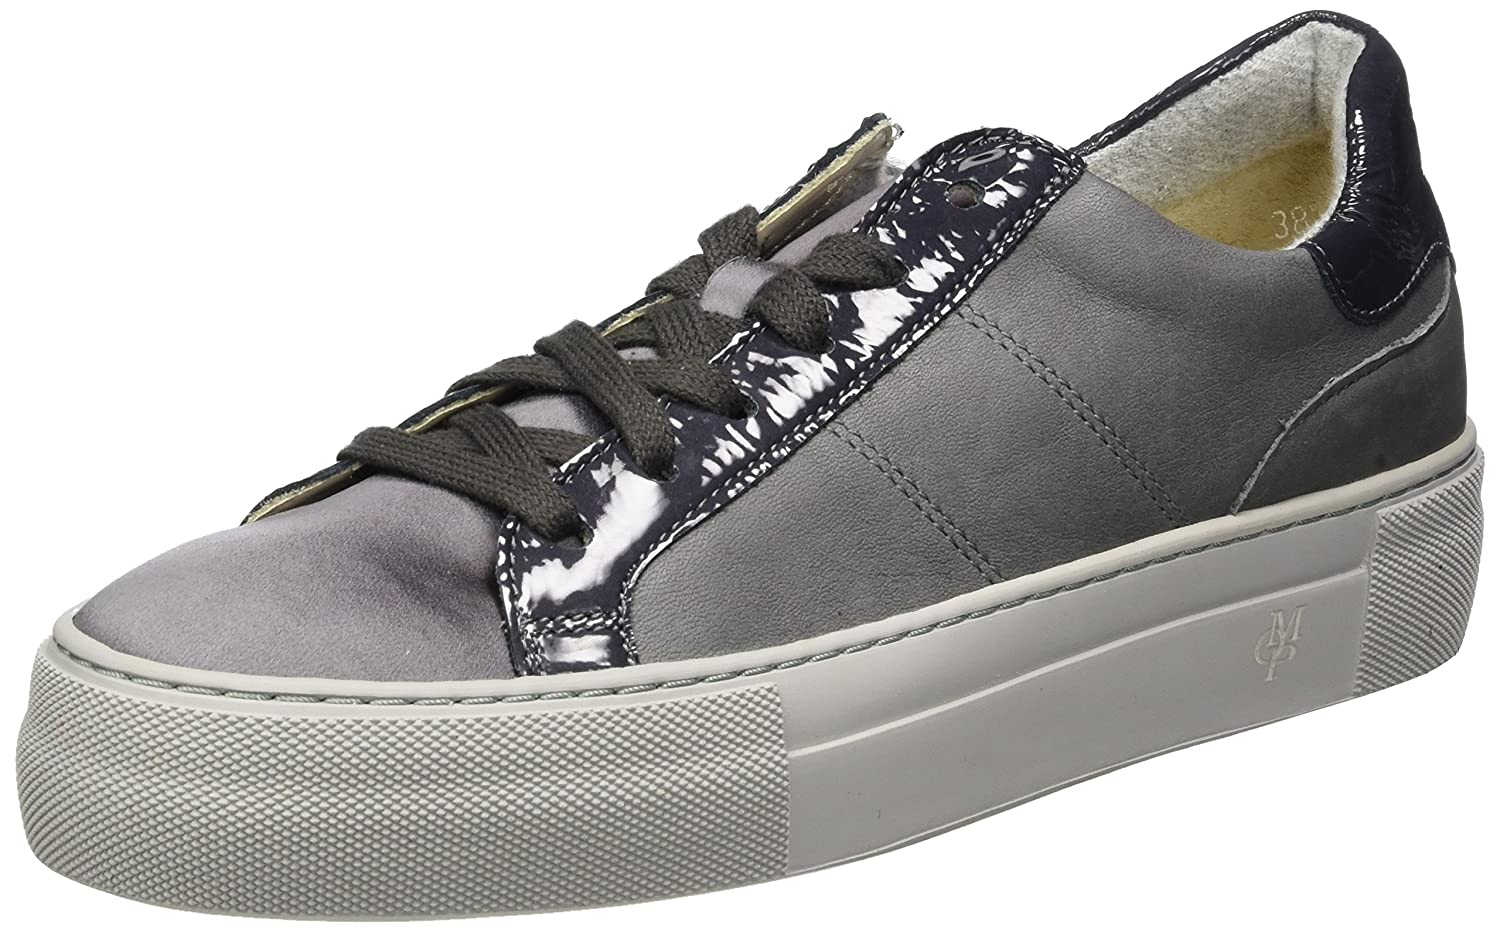 Marc B078N341N5 O Polo Marc Sneaker 70714193502604, Baskets Femme Baskets Gris 23adb67 - robotanarchy.space